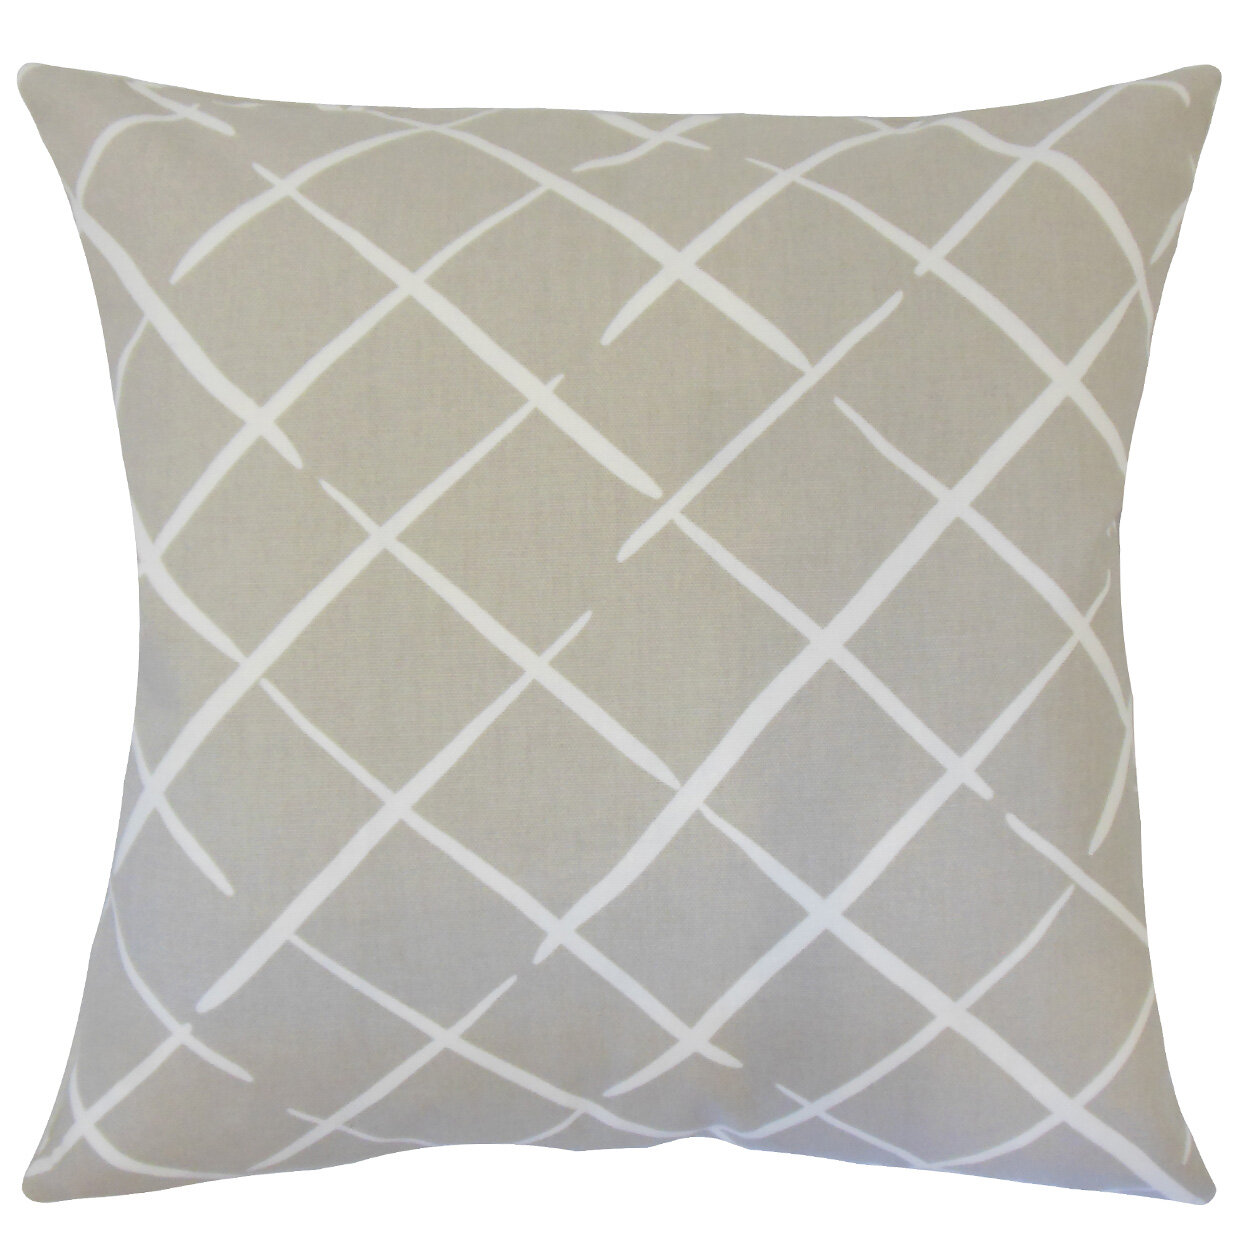 Best Throw Pillow Filling : Orren Ellis Kistner Geometric Down Filled 100% Cotton Throw Pillow Wayfair